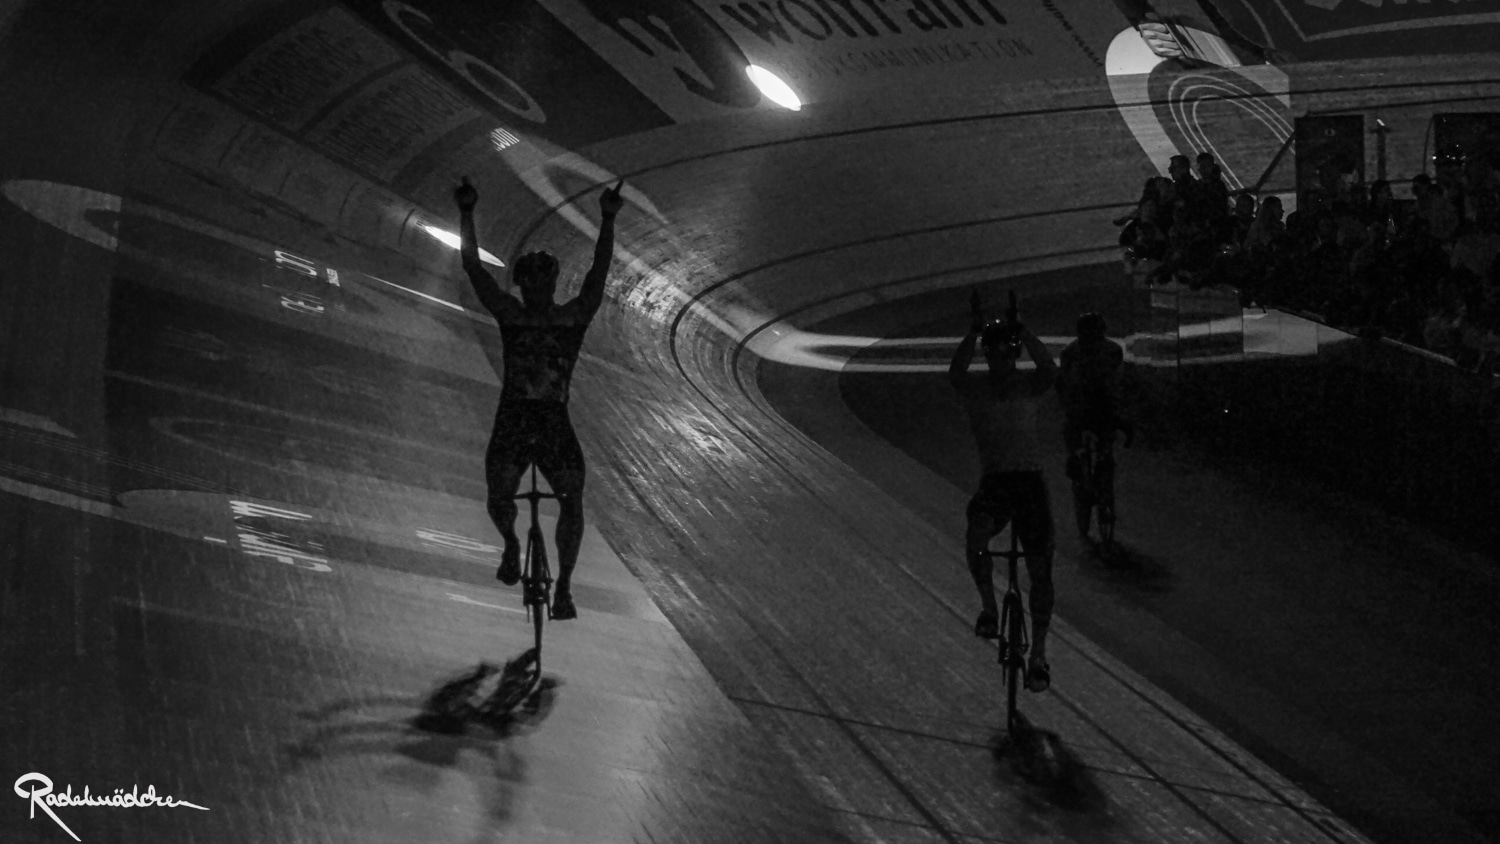 Six Day Berlin cyclist black and white